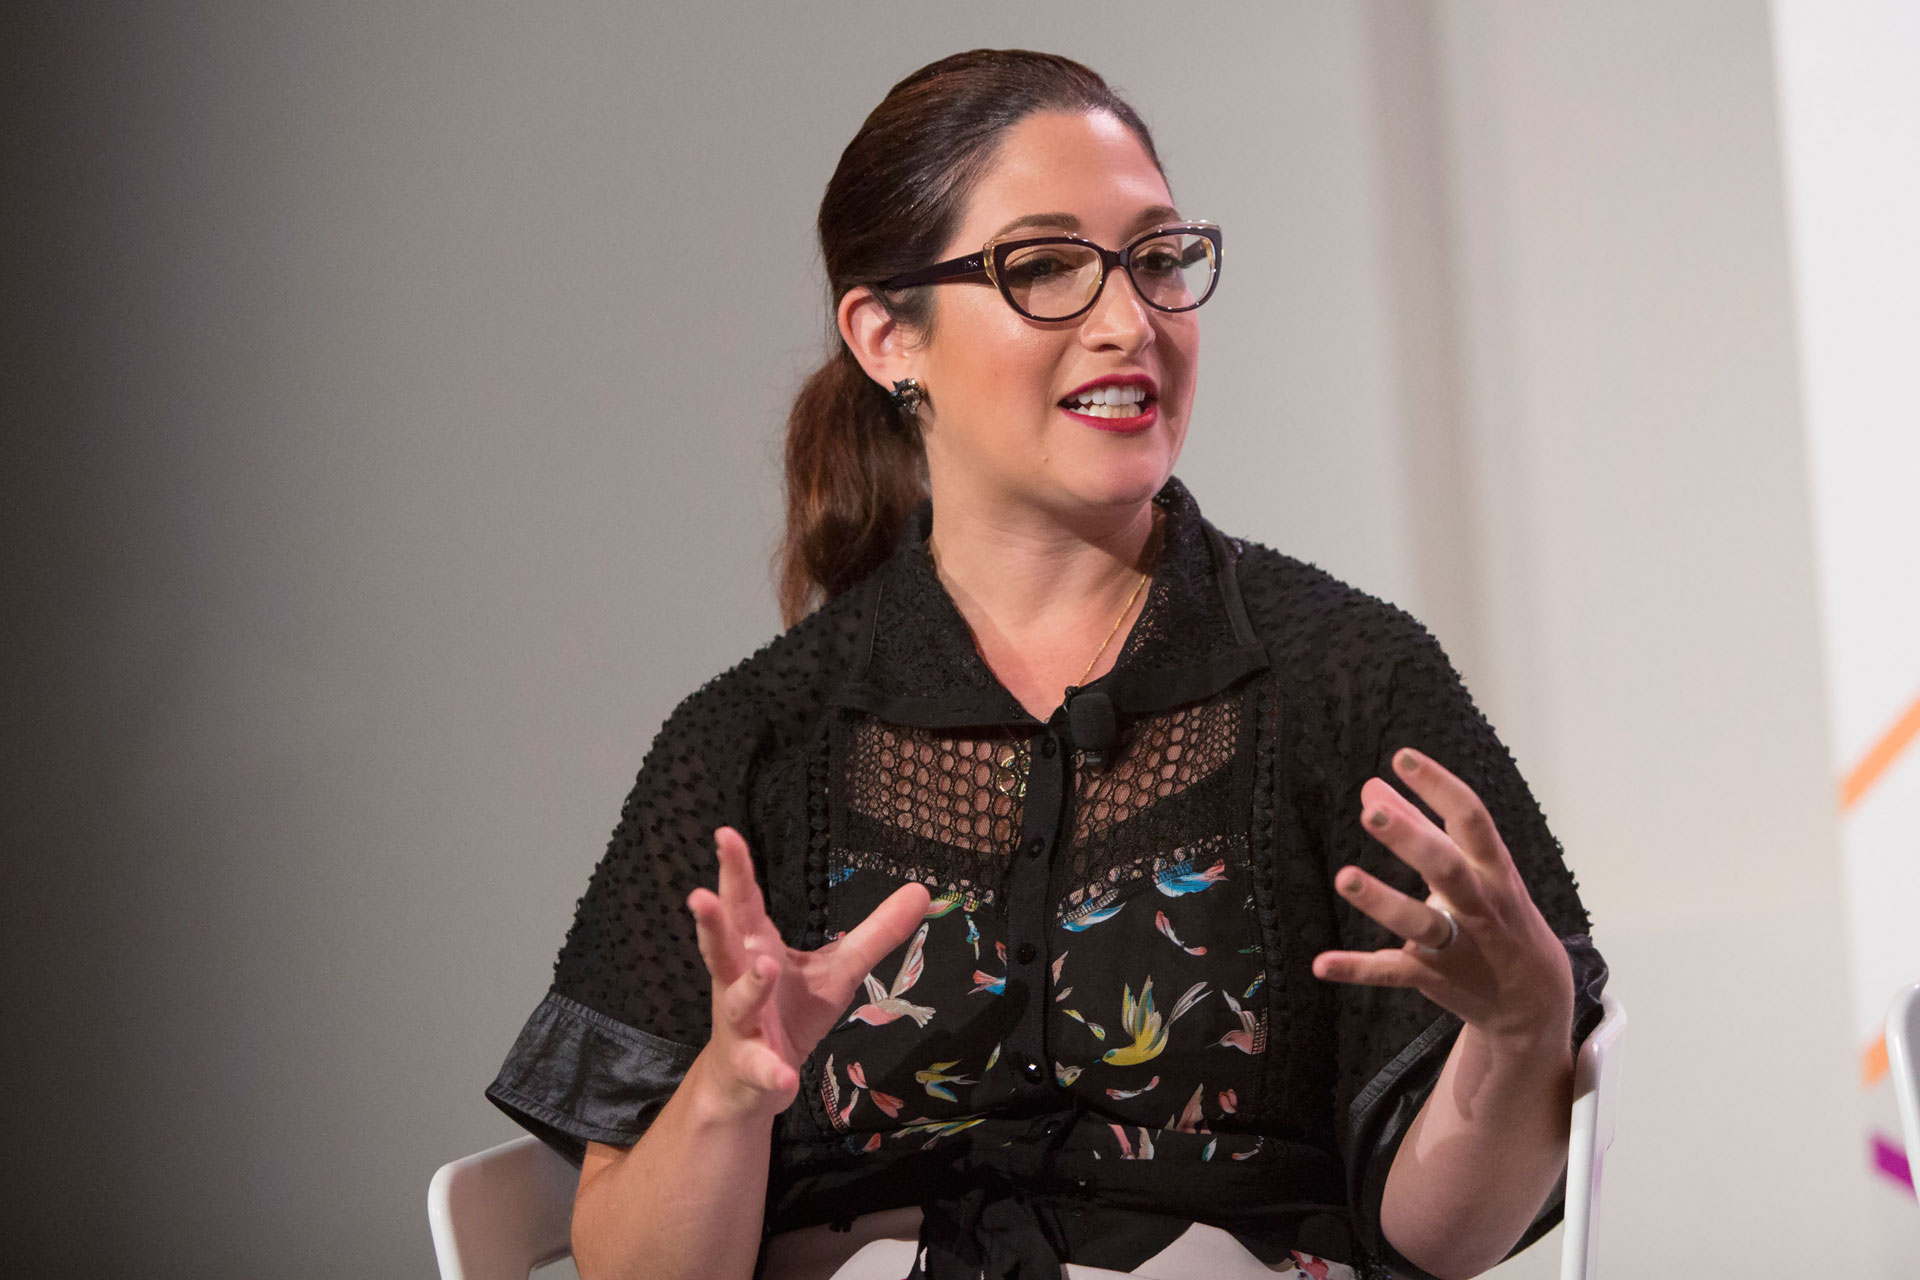 Randi Zuckerberg - American Businesswoman